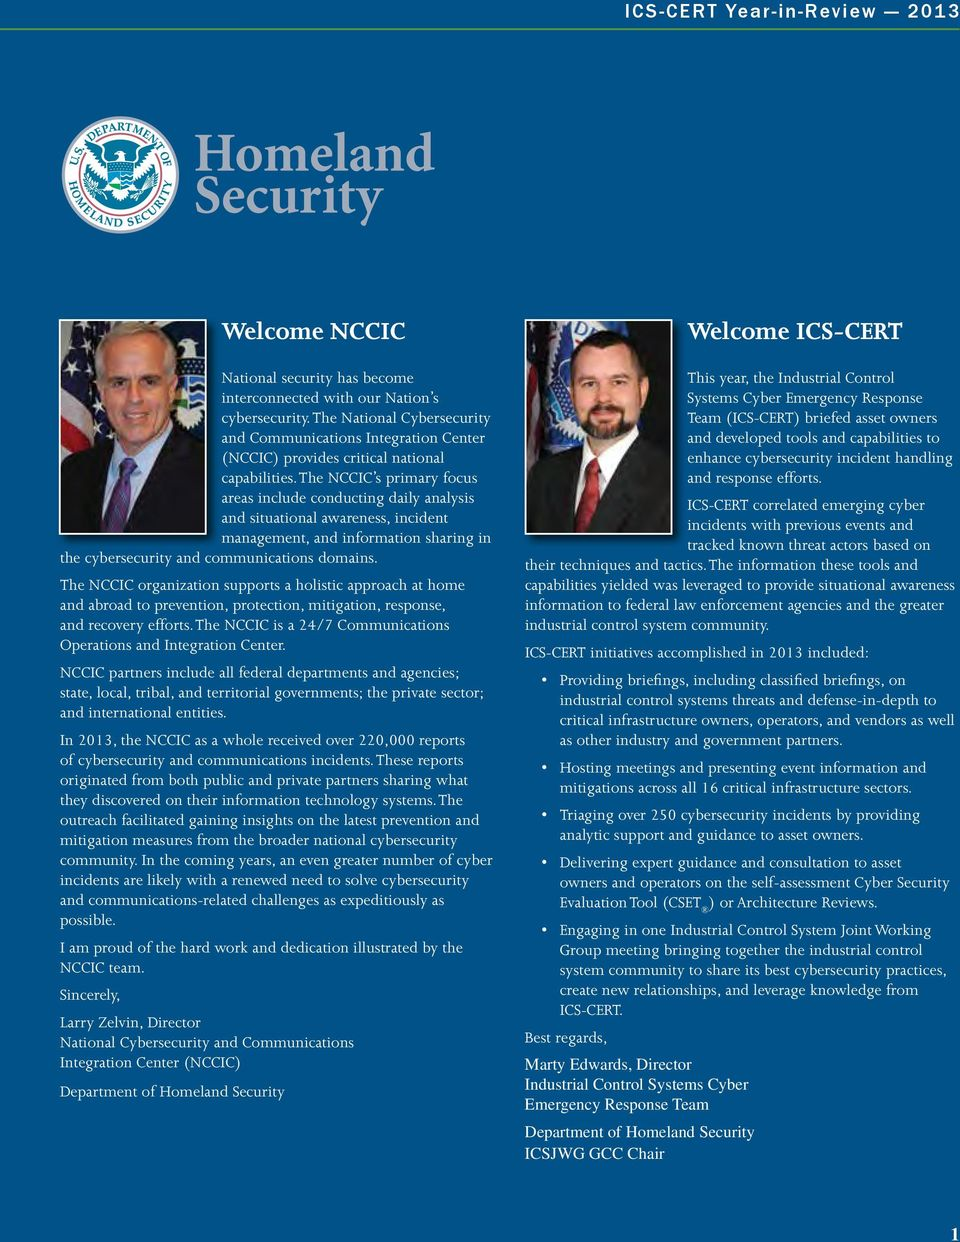 The NCCIC s primary focus areas include conducting daily analysis and situational awareness, incident management, and information sharing in the cybersecurity and communications domains.